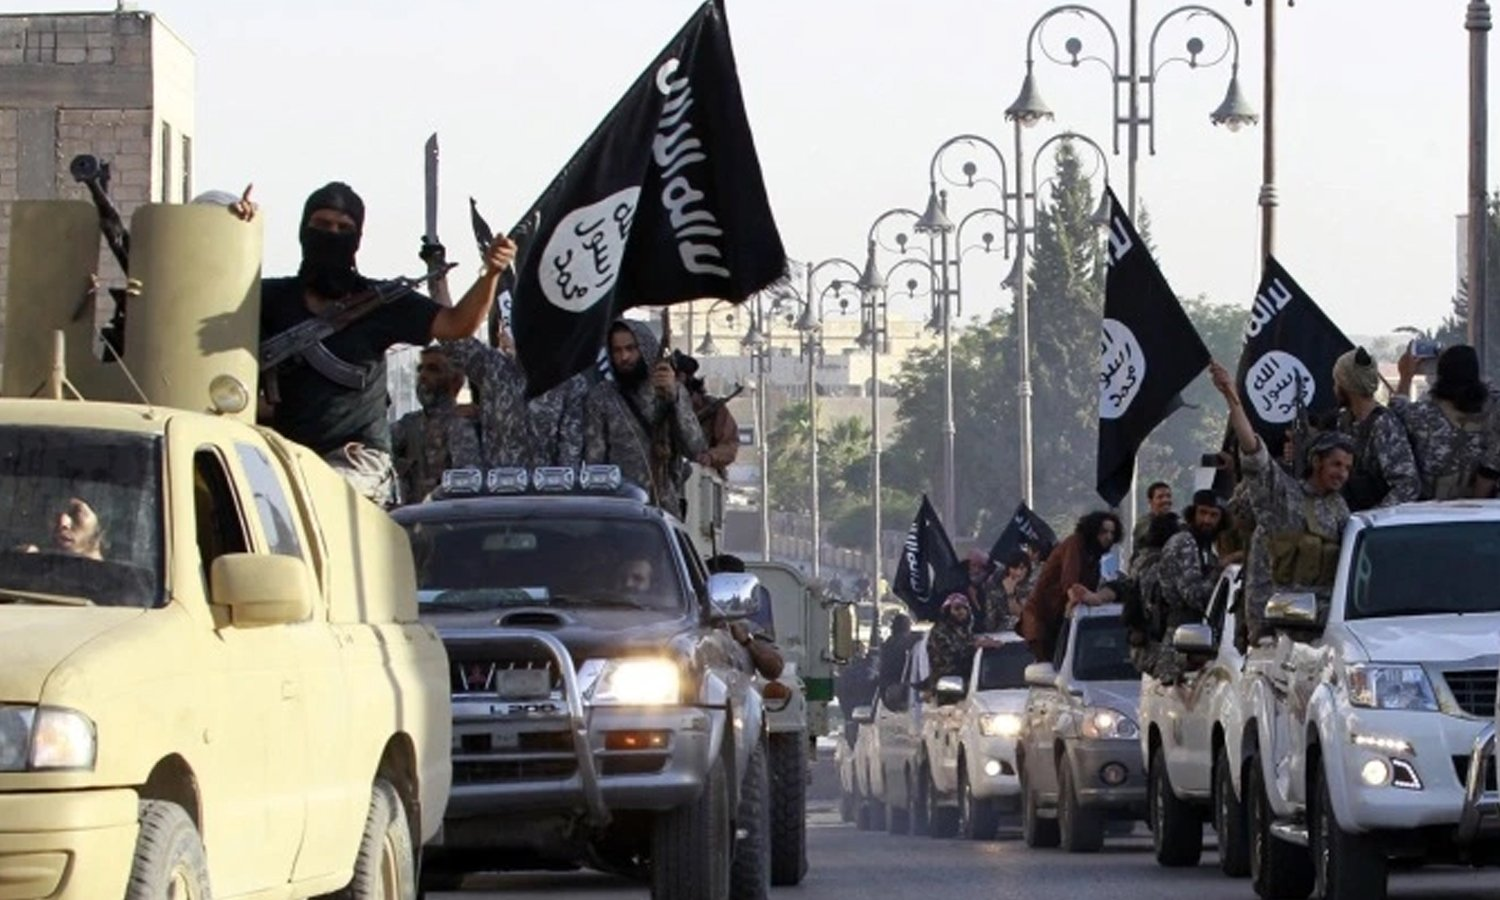 A convoy of the Islamic State (IS) parading in Raqqa streets—mid-2014 (Reuters)